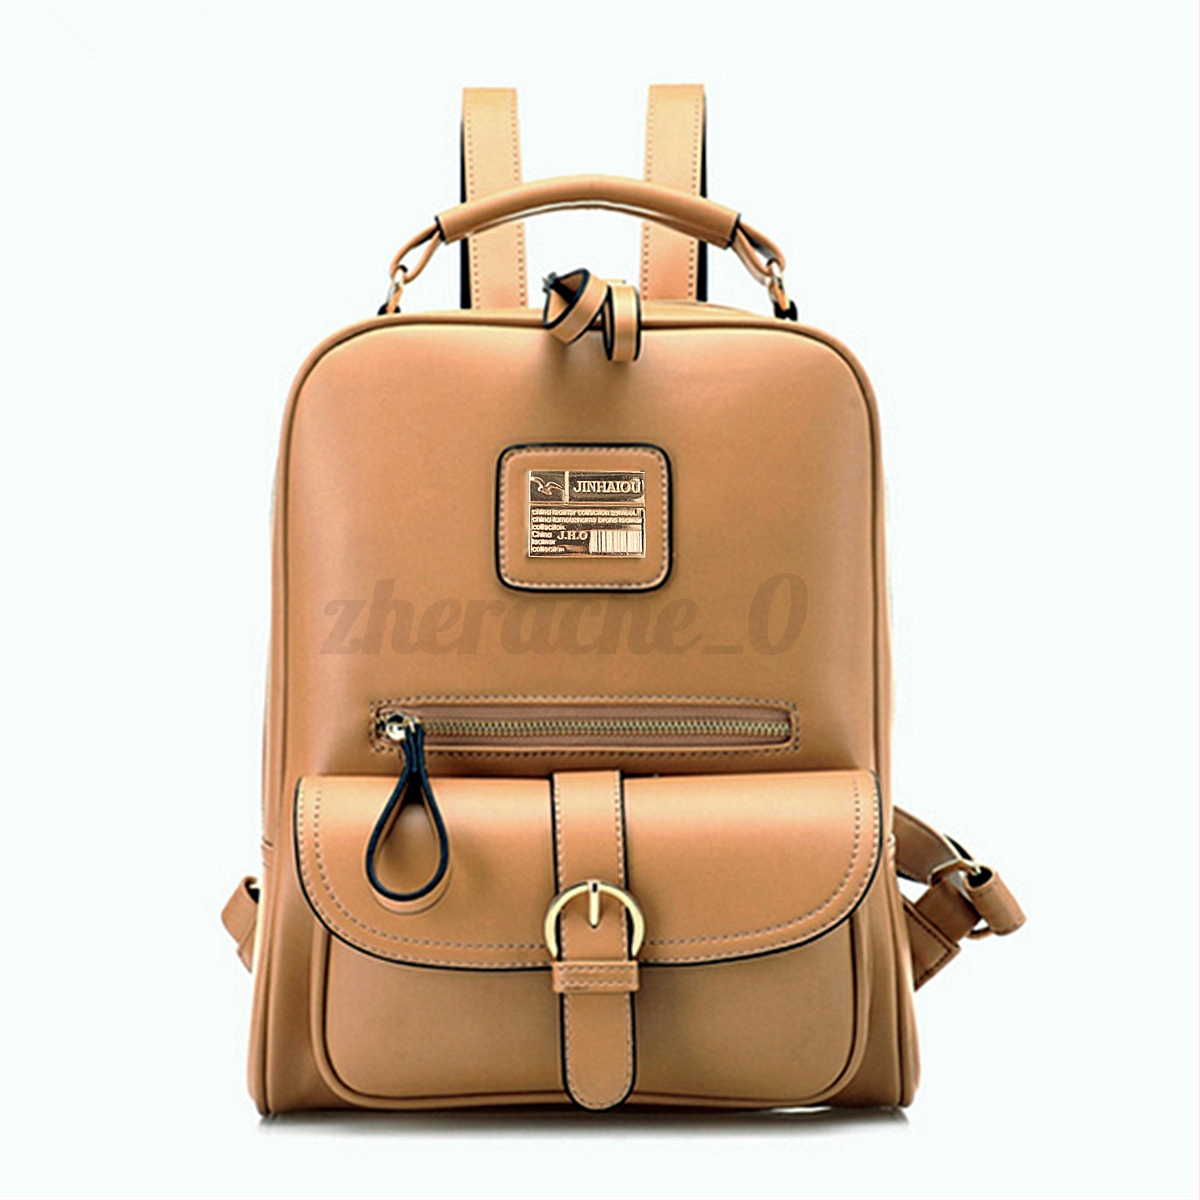 US Women Leather Backpack School Lady Travel Rucksack Shoulder ...